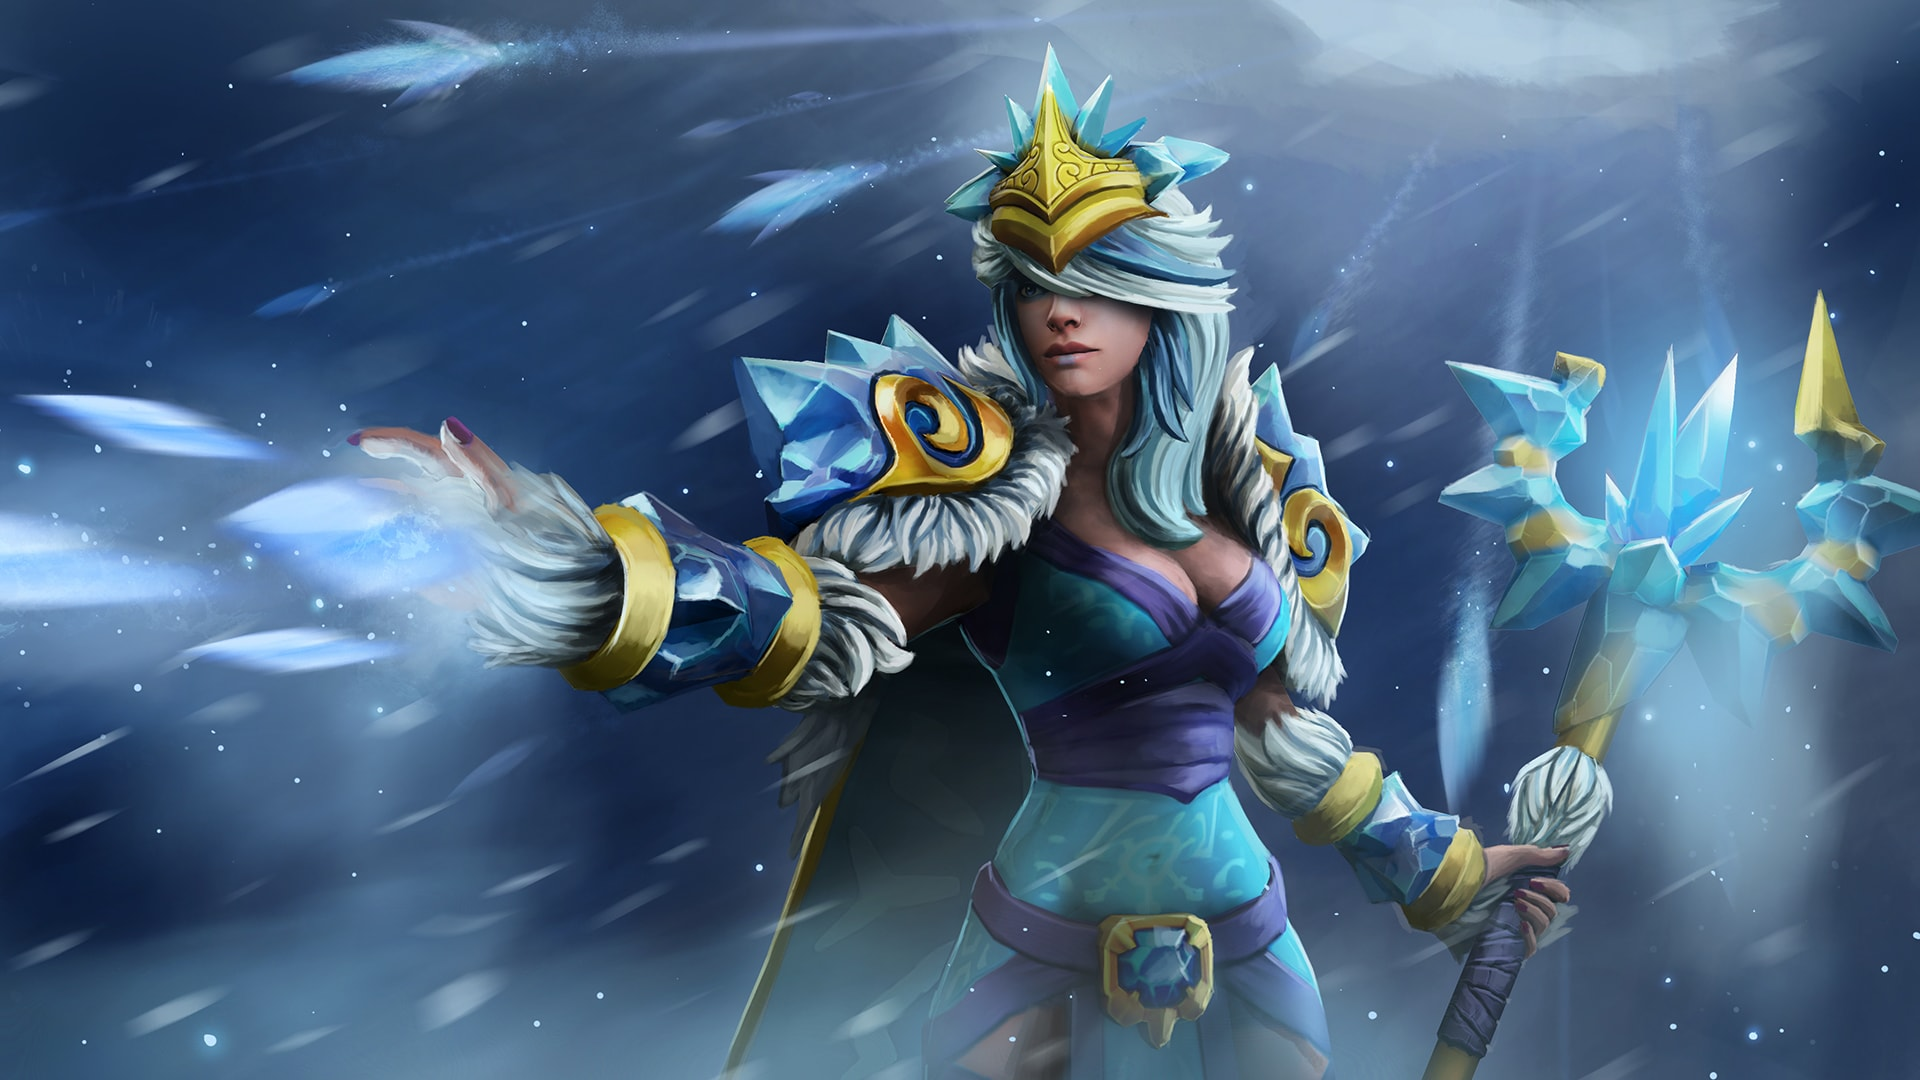 Dota2 Crystal Maiden Hd Wallpapers 7wallpapers Net